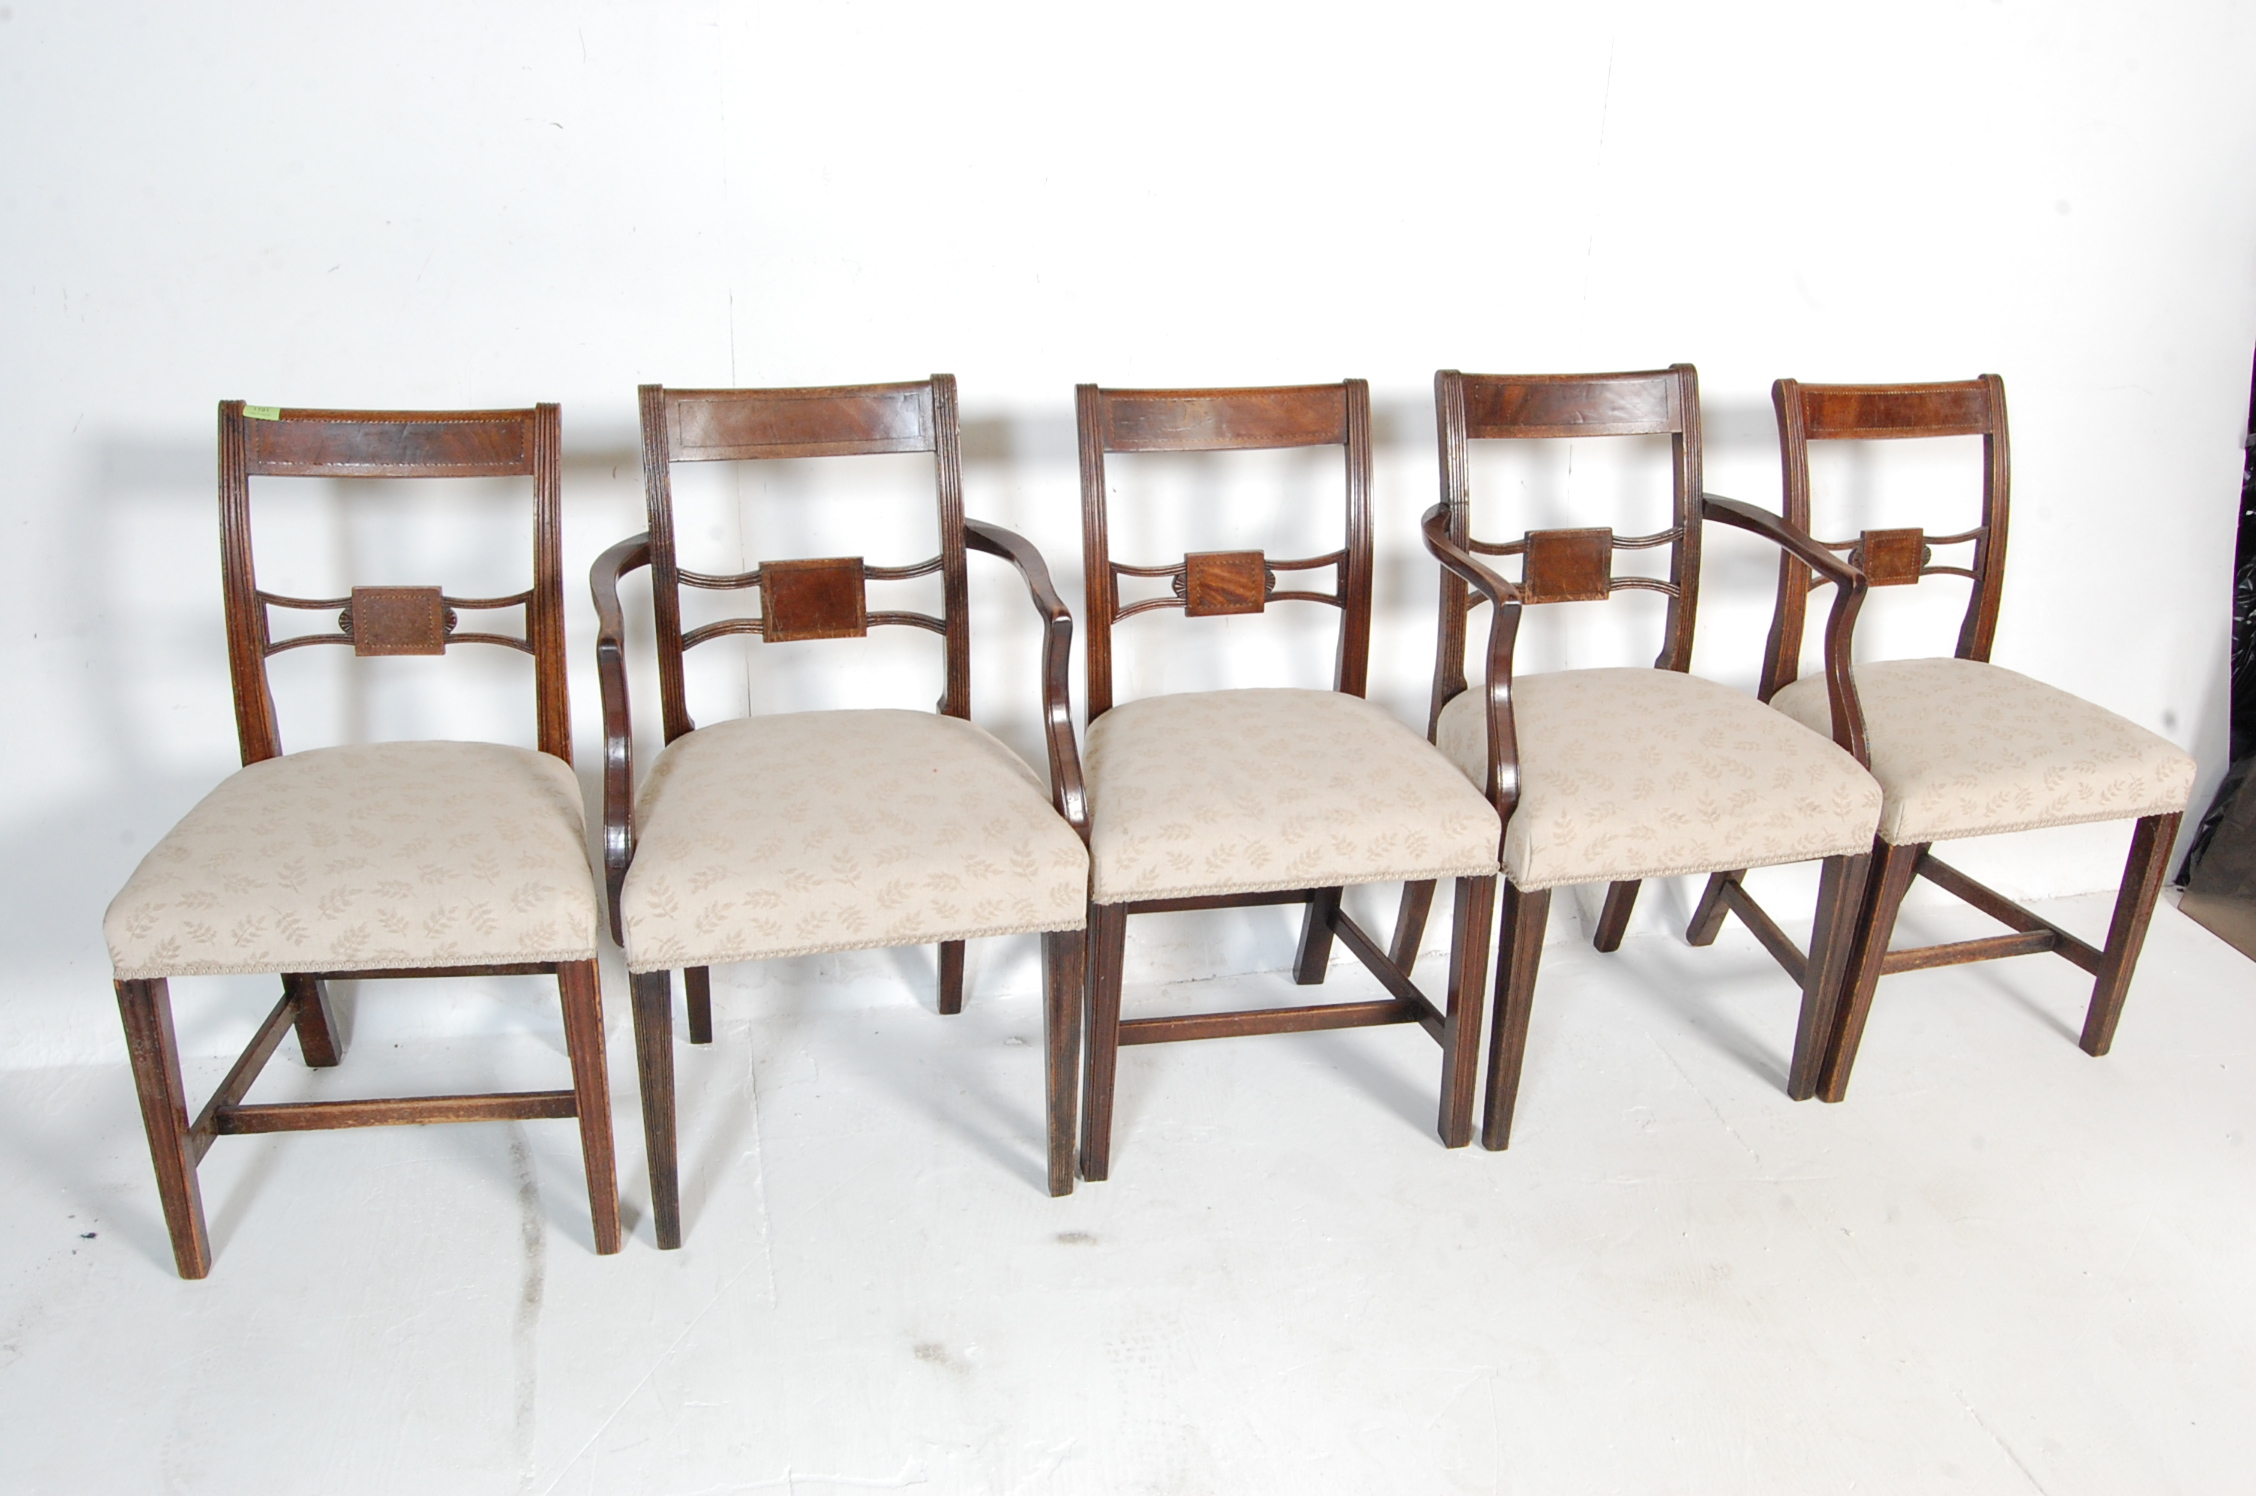 AN ANTIQUE EDWARDIAN REGENCY REVIVAL HARLEQUIN SET OF SIX CHAIRS - Image 2 of 7